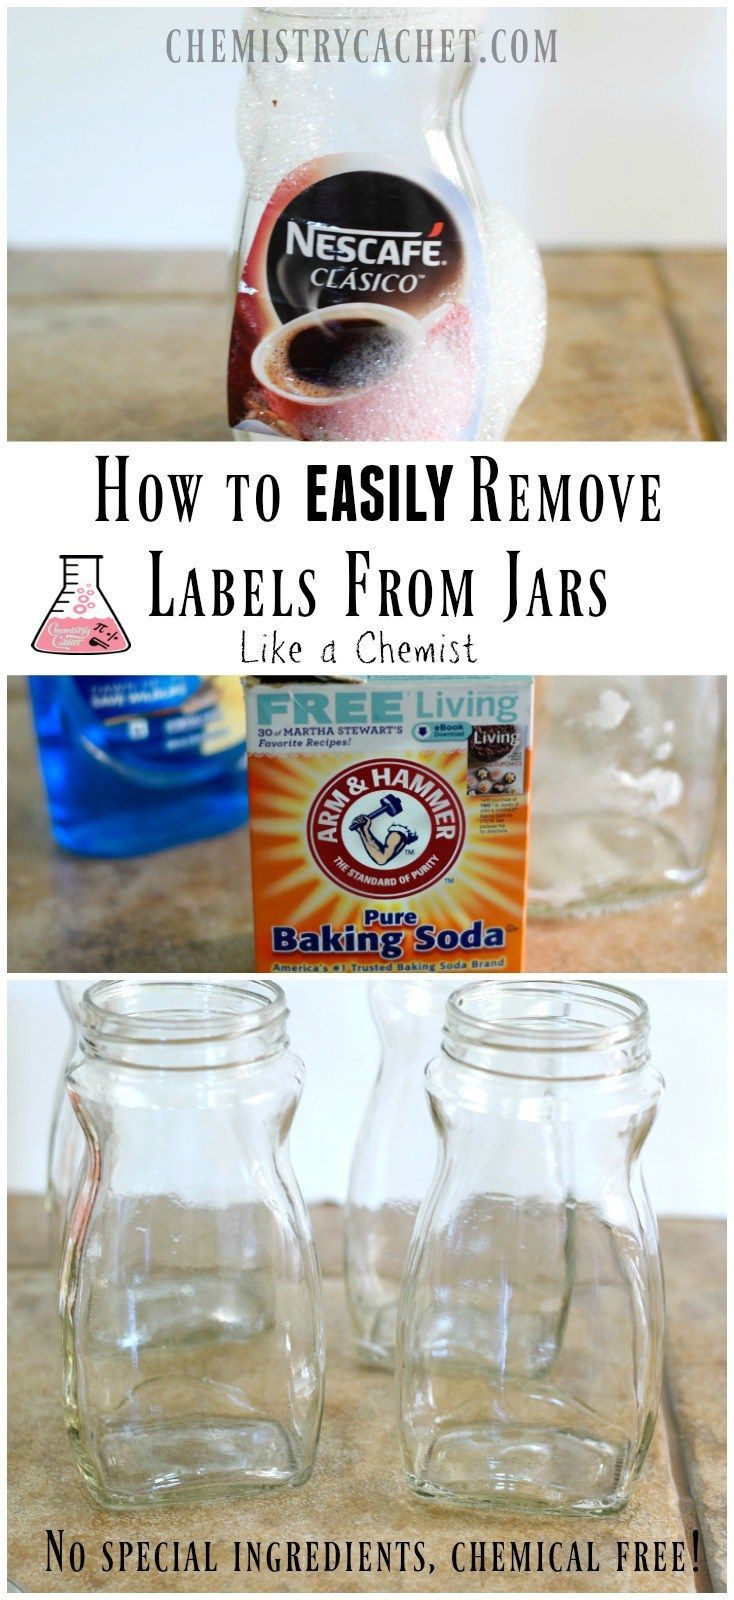 Tutorial on How to Remove Labels From Jars the easy way! No special ingredients needed and it only takes two steps! This is how we removed STUCK on labels in the chemistry lab without added chemicals. Find details on http://chemistrycachet.com